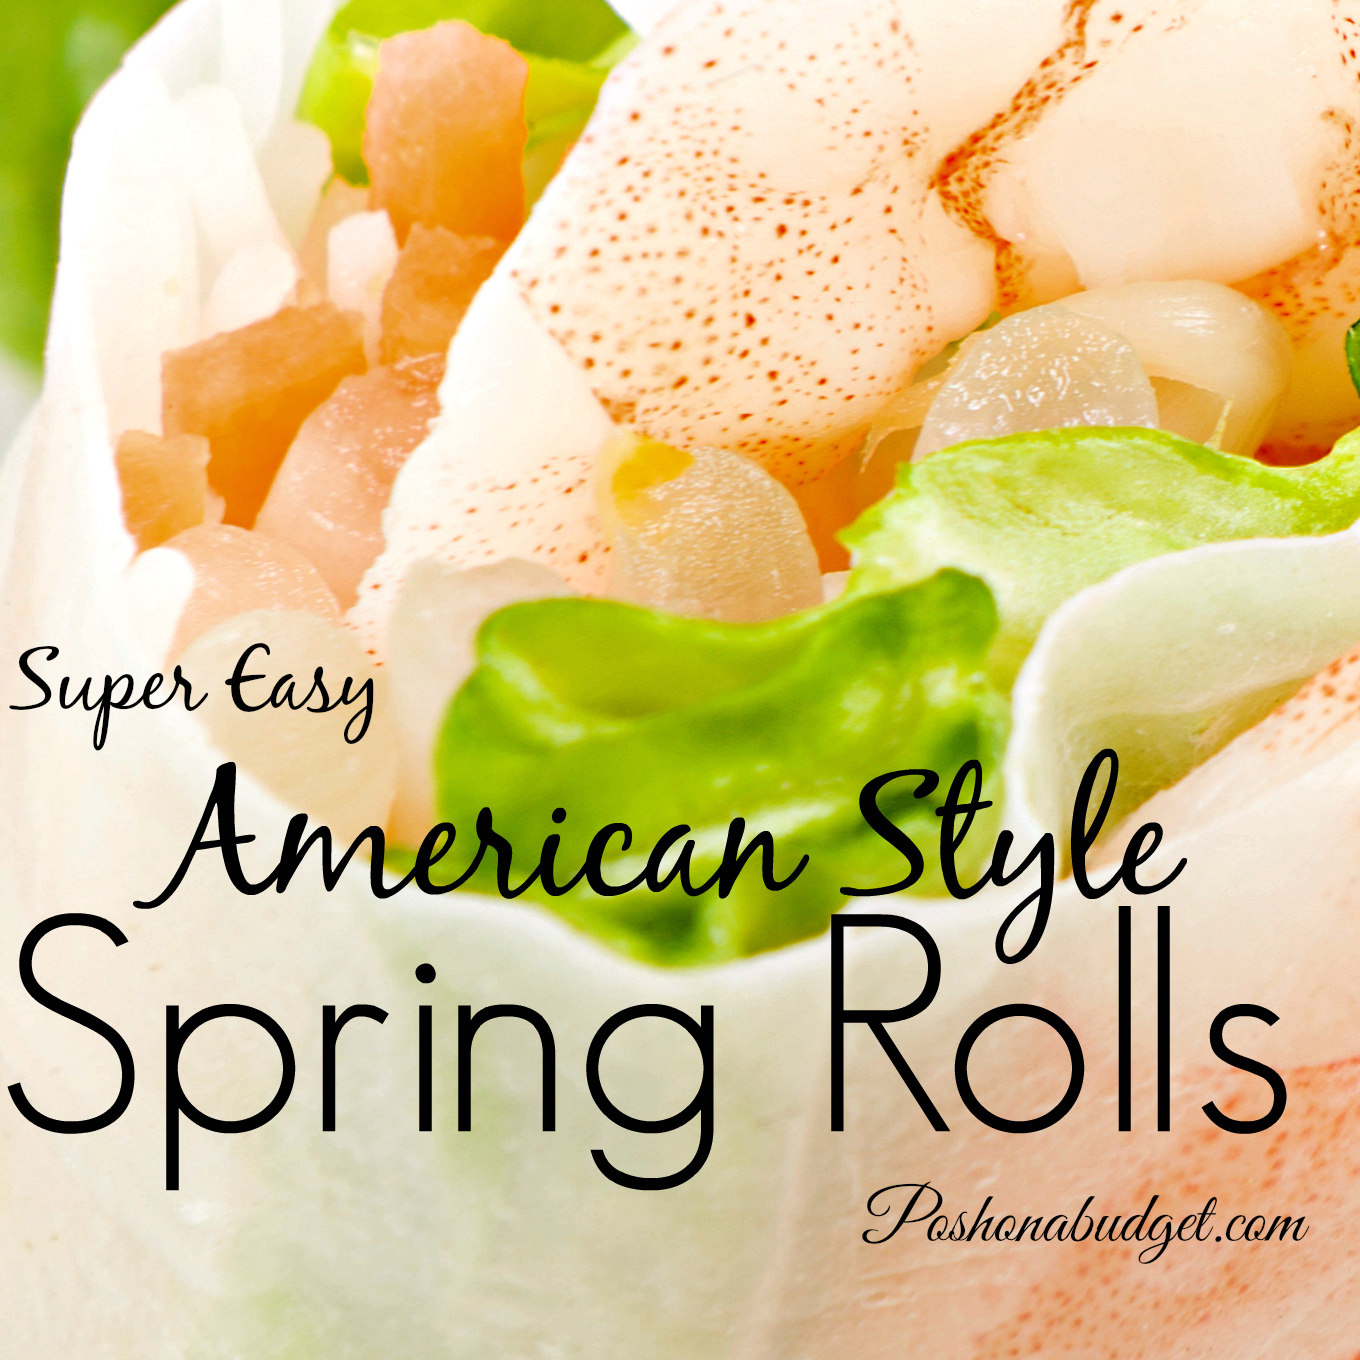 American Style Spring Rolls